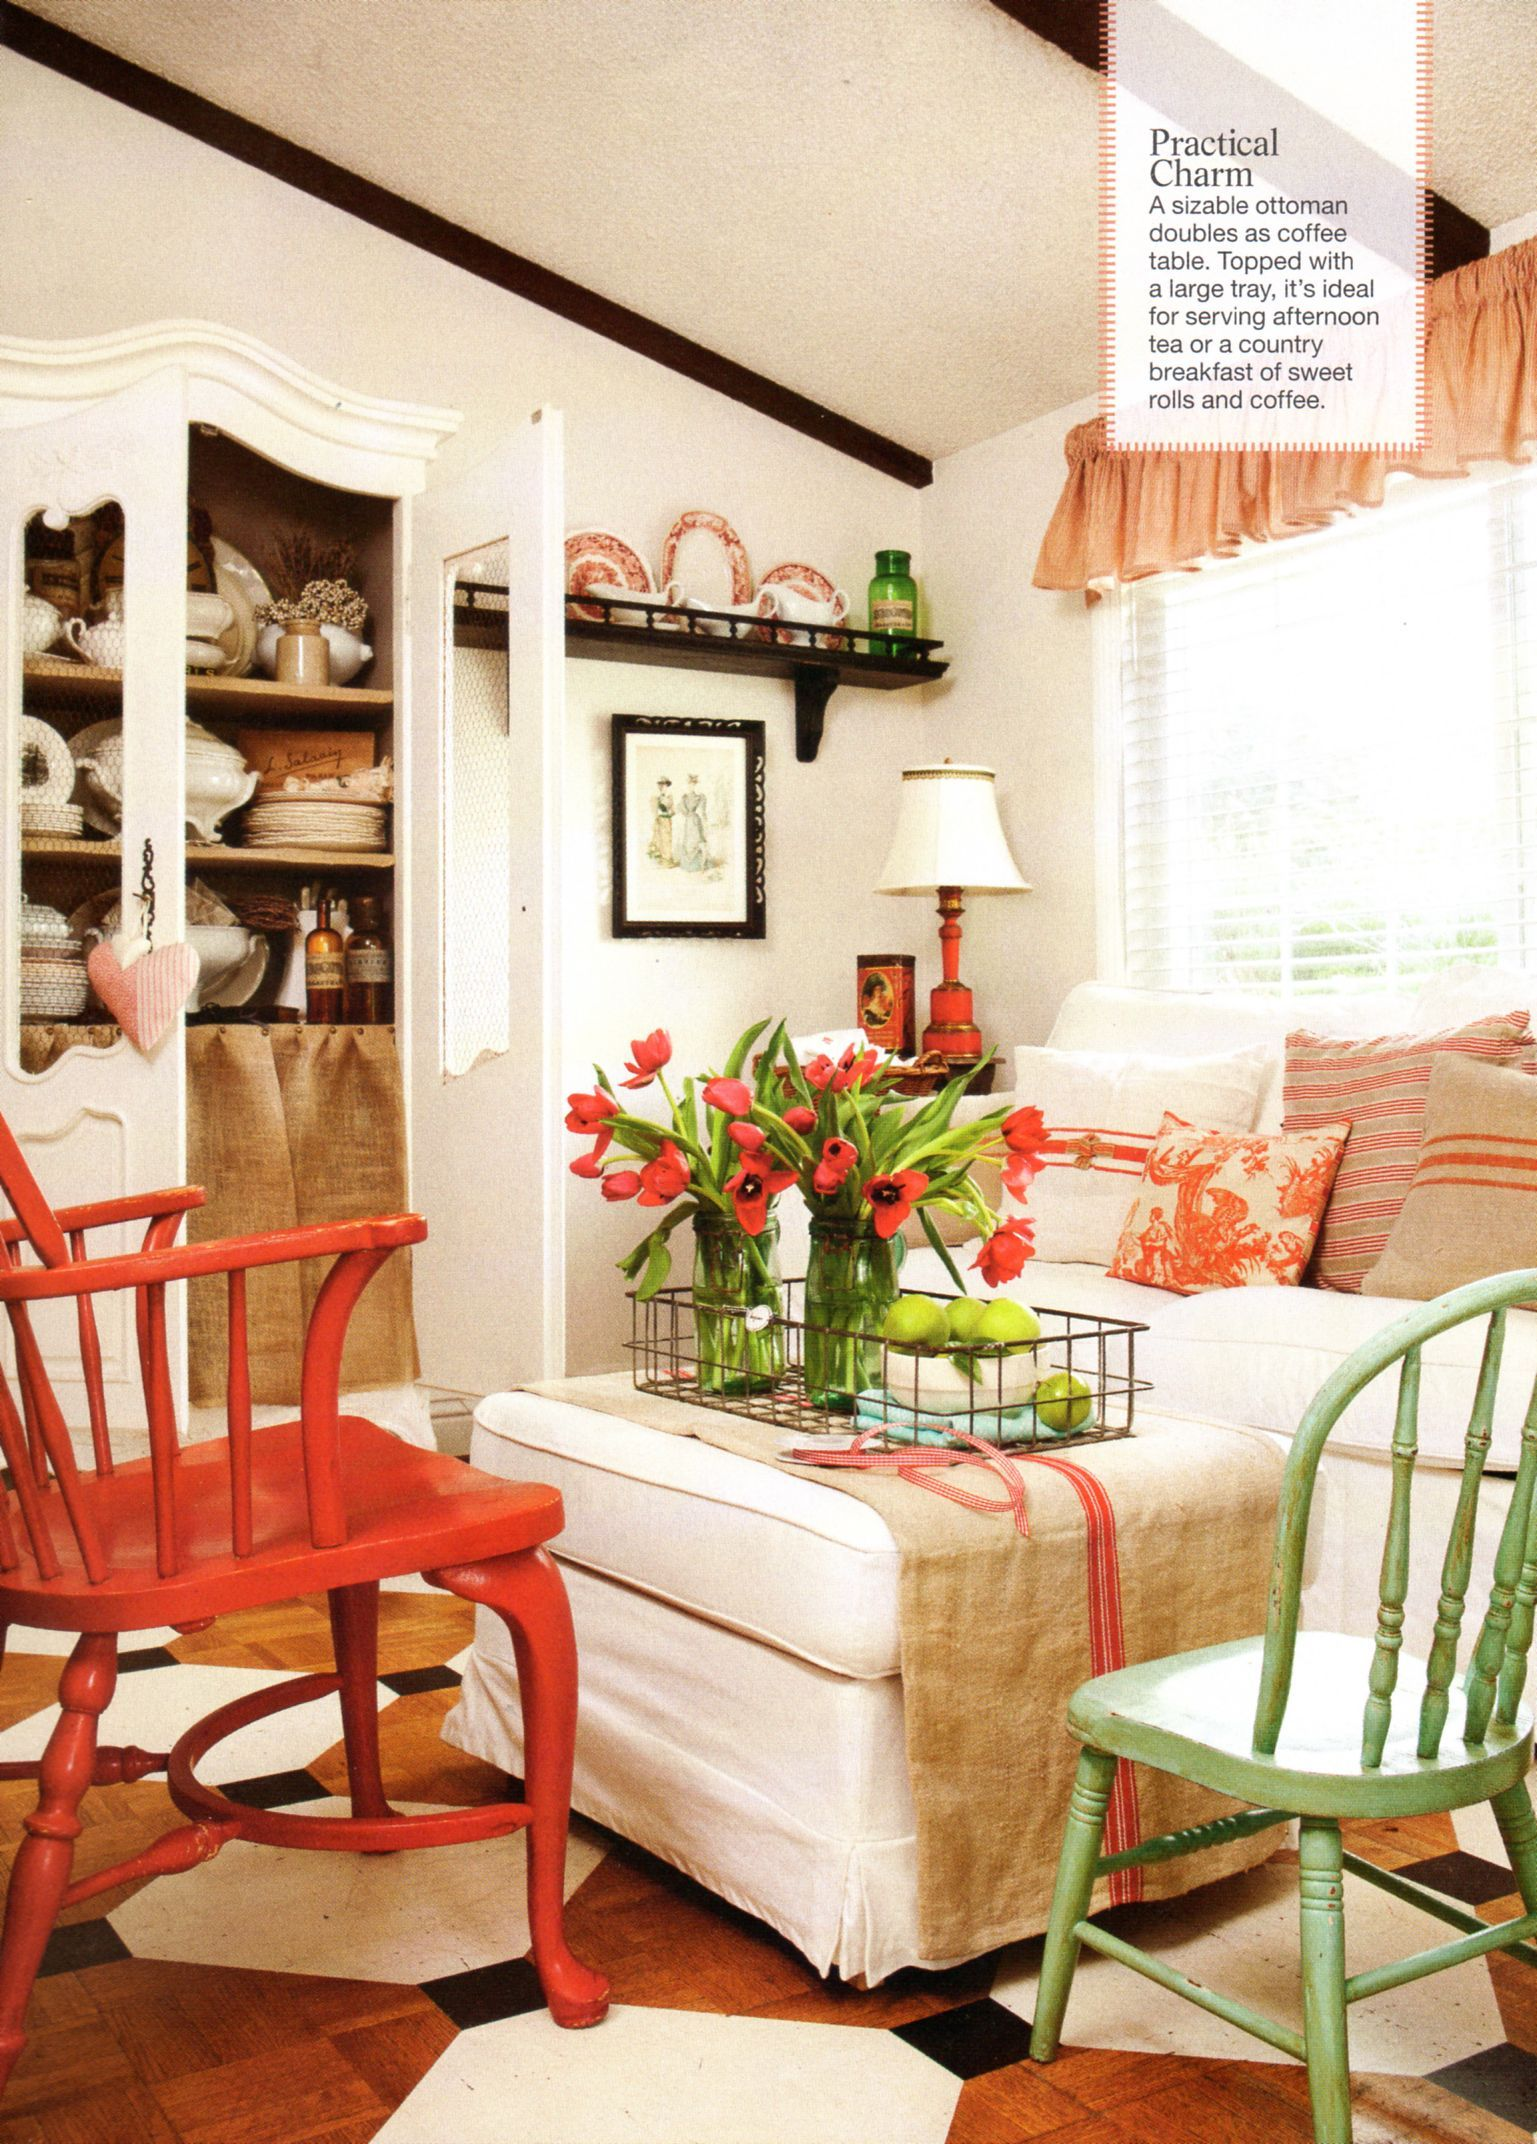 French country style magazine 2013 home ideas for Country cottage magazine